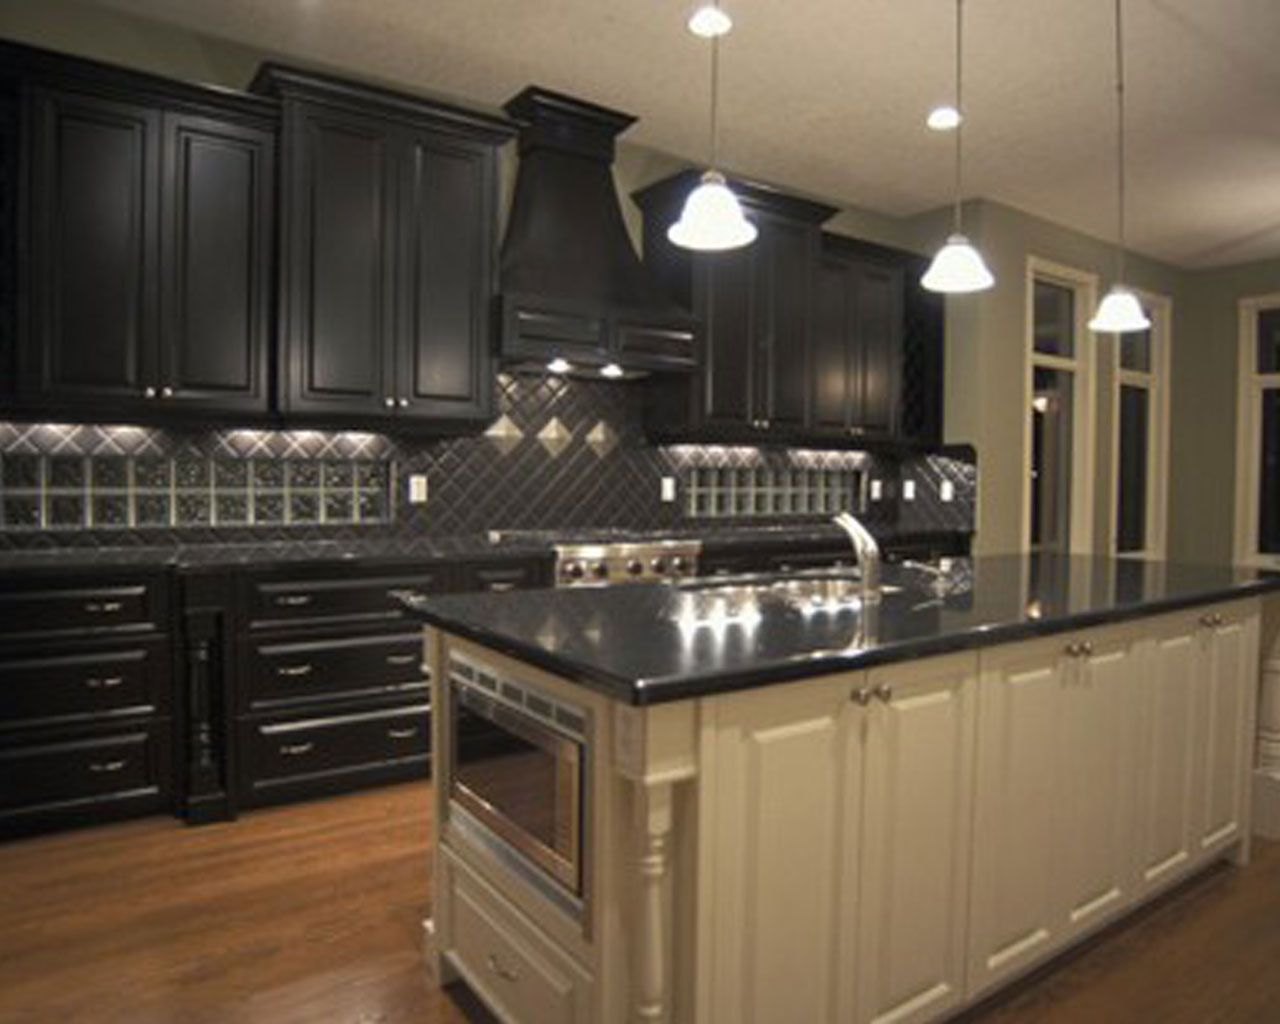 Finest design black kitchen cabinets wallpapers new for Dark kitchen design ideas